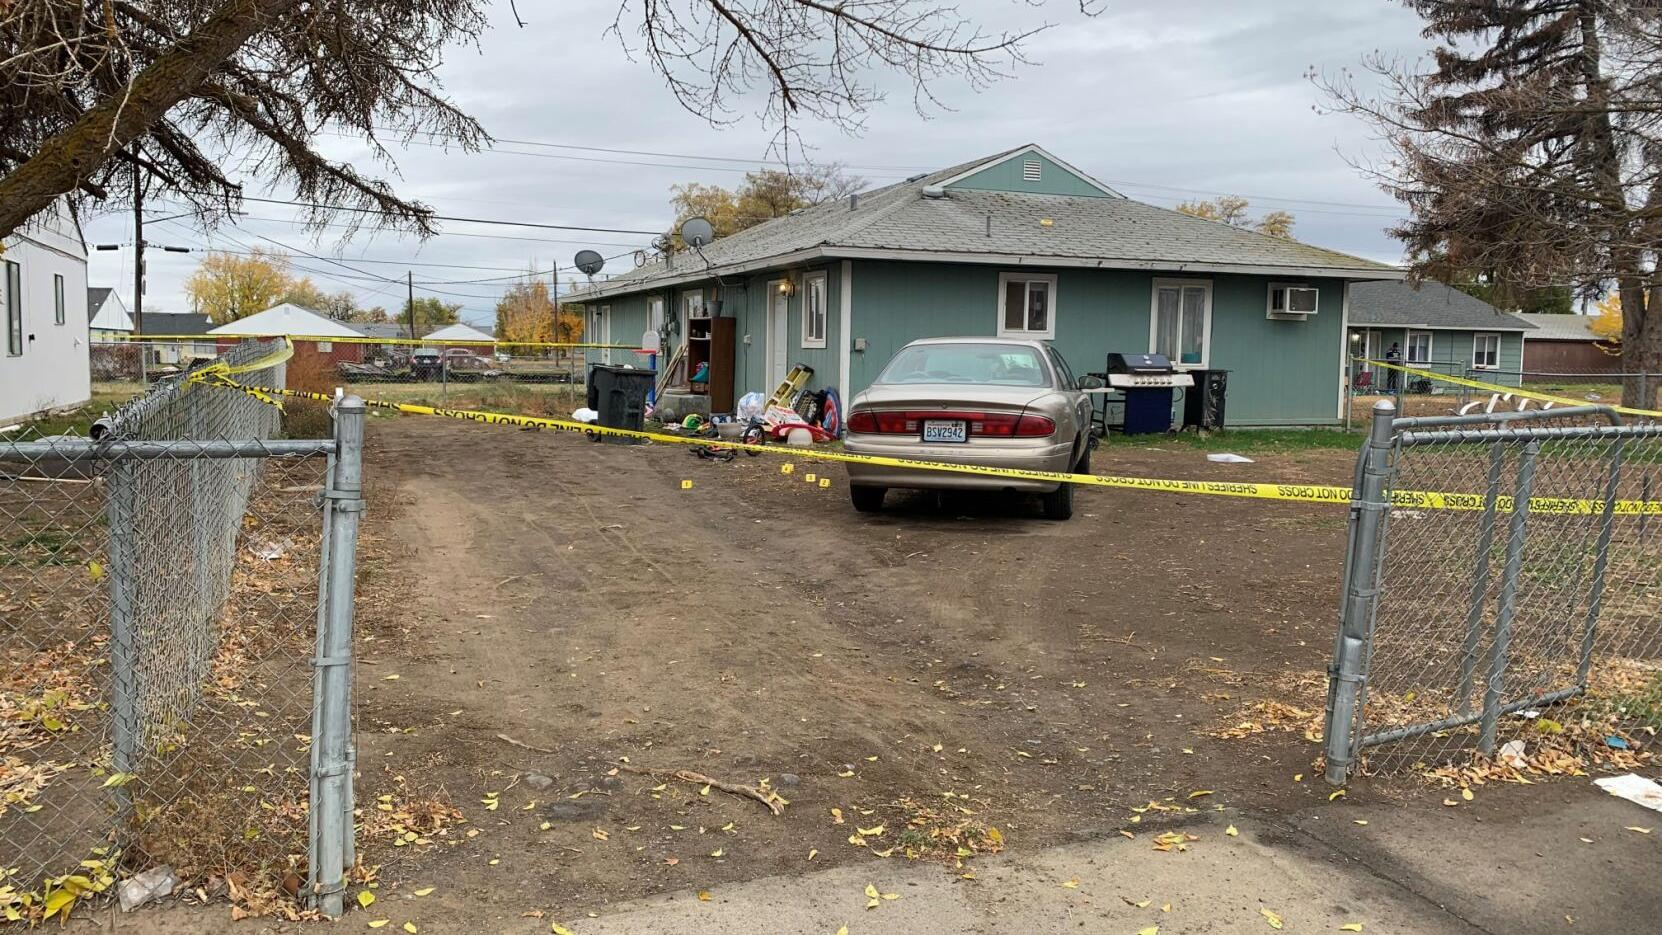 UPDATE: One dead in Sunday morning shooting near Moses Lake